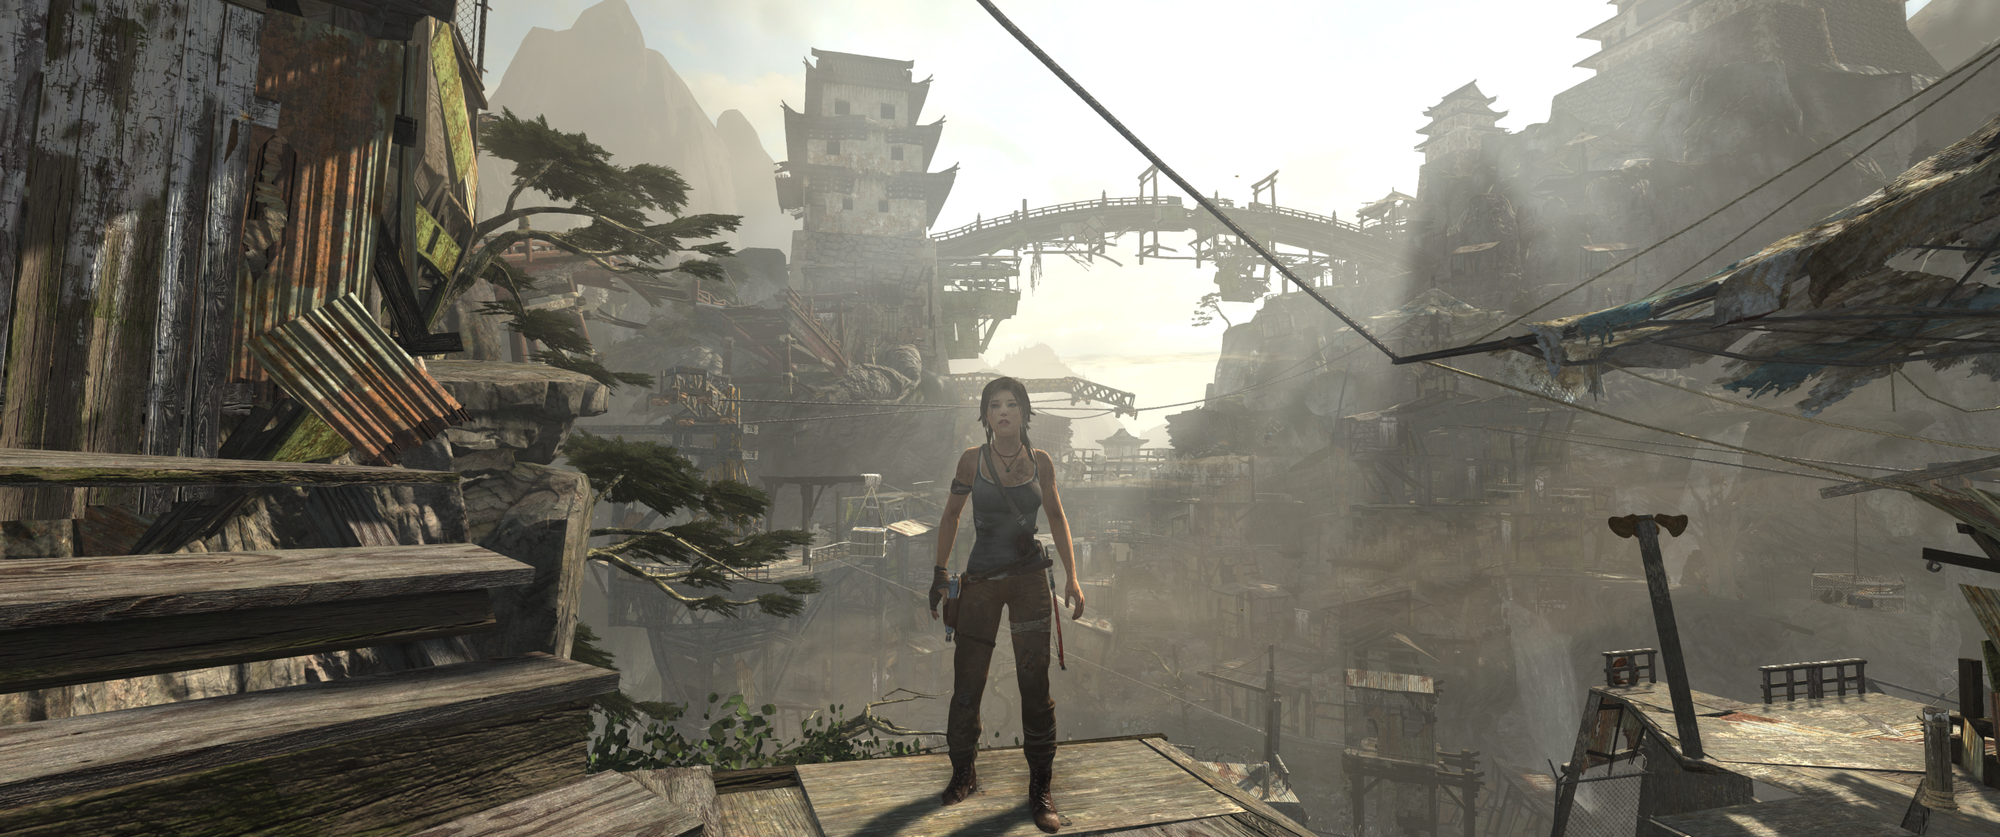 TombRaider_2018_07_24_21_51_06_787.png